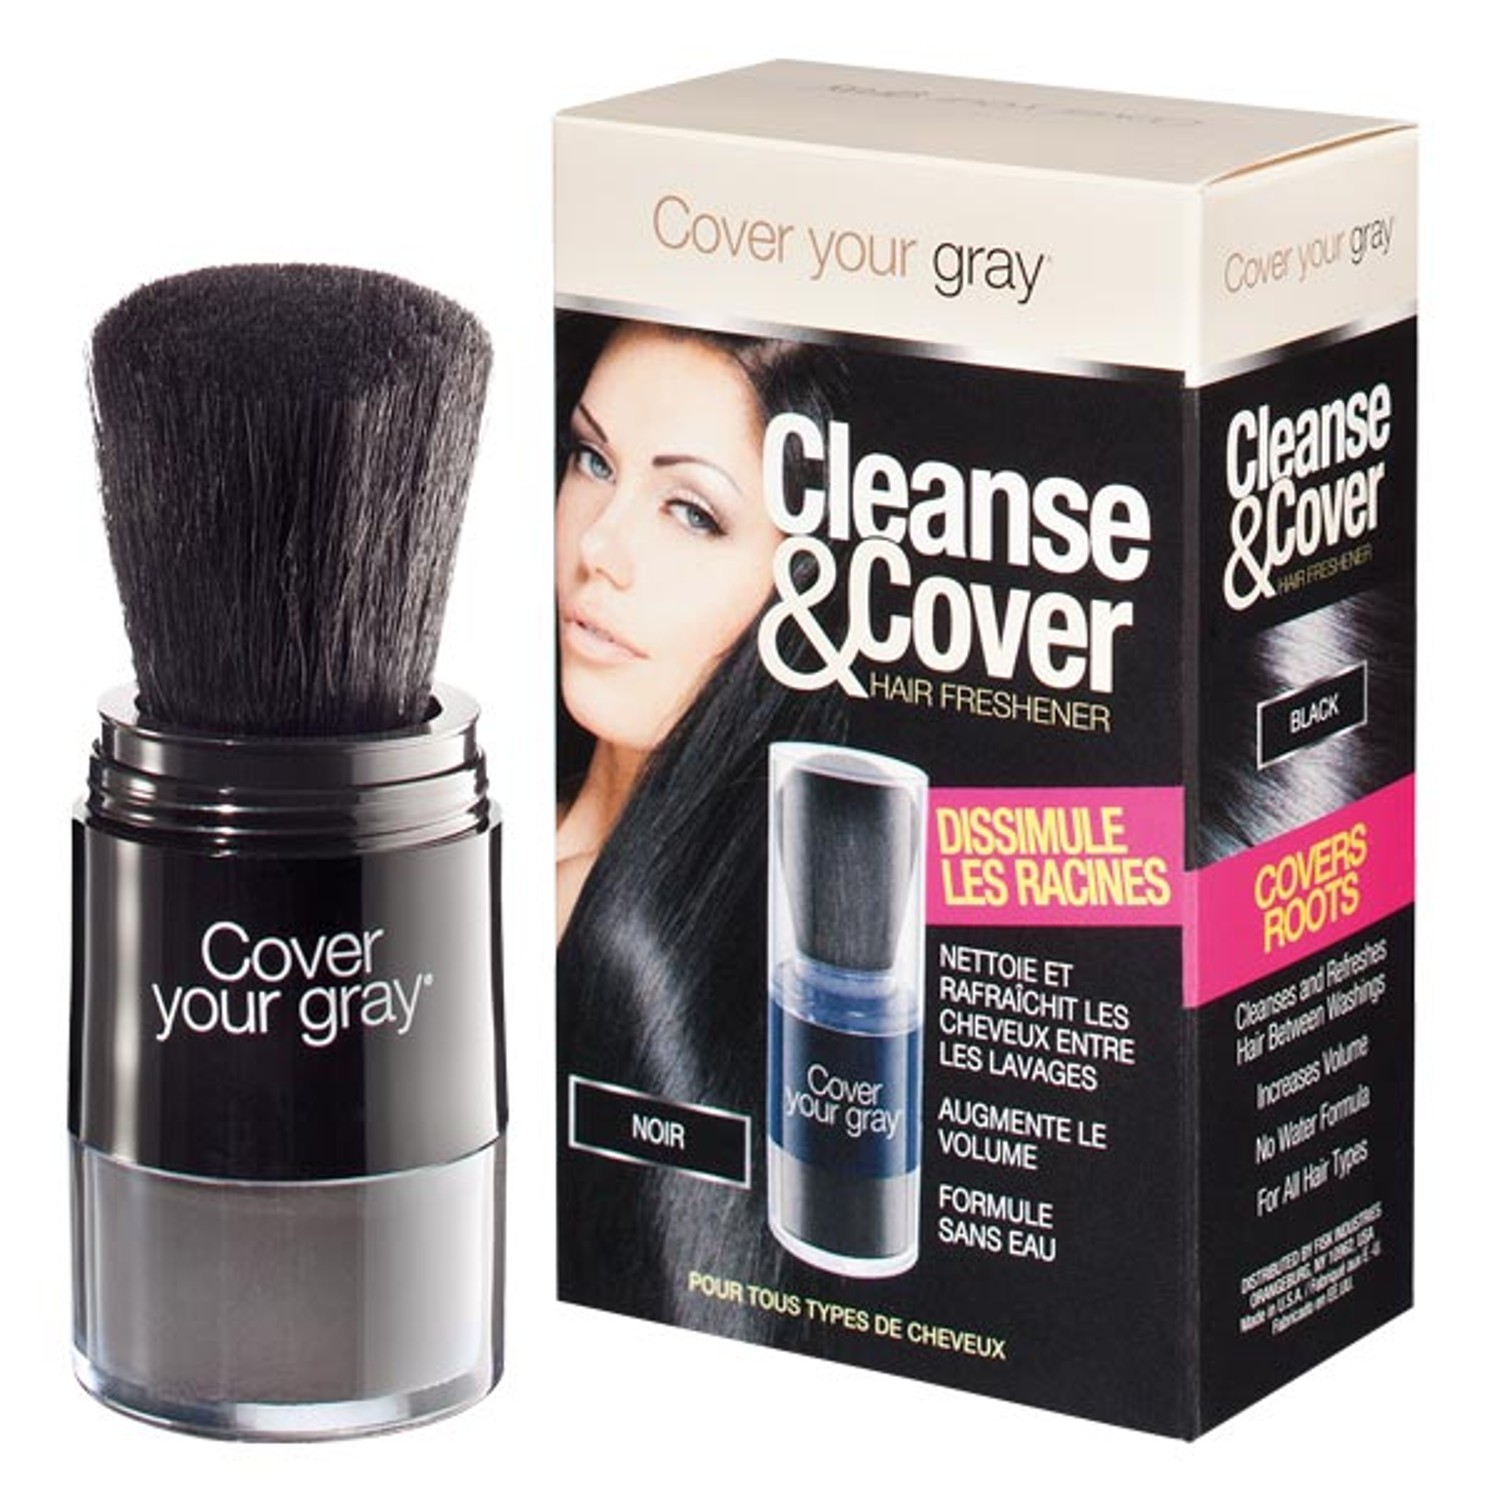 Cover your gray Cleanse & Cover 12 g